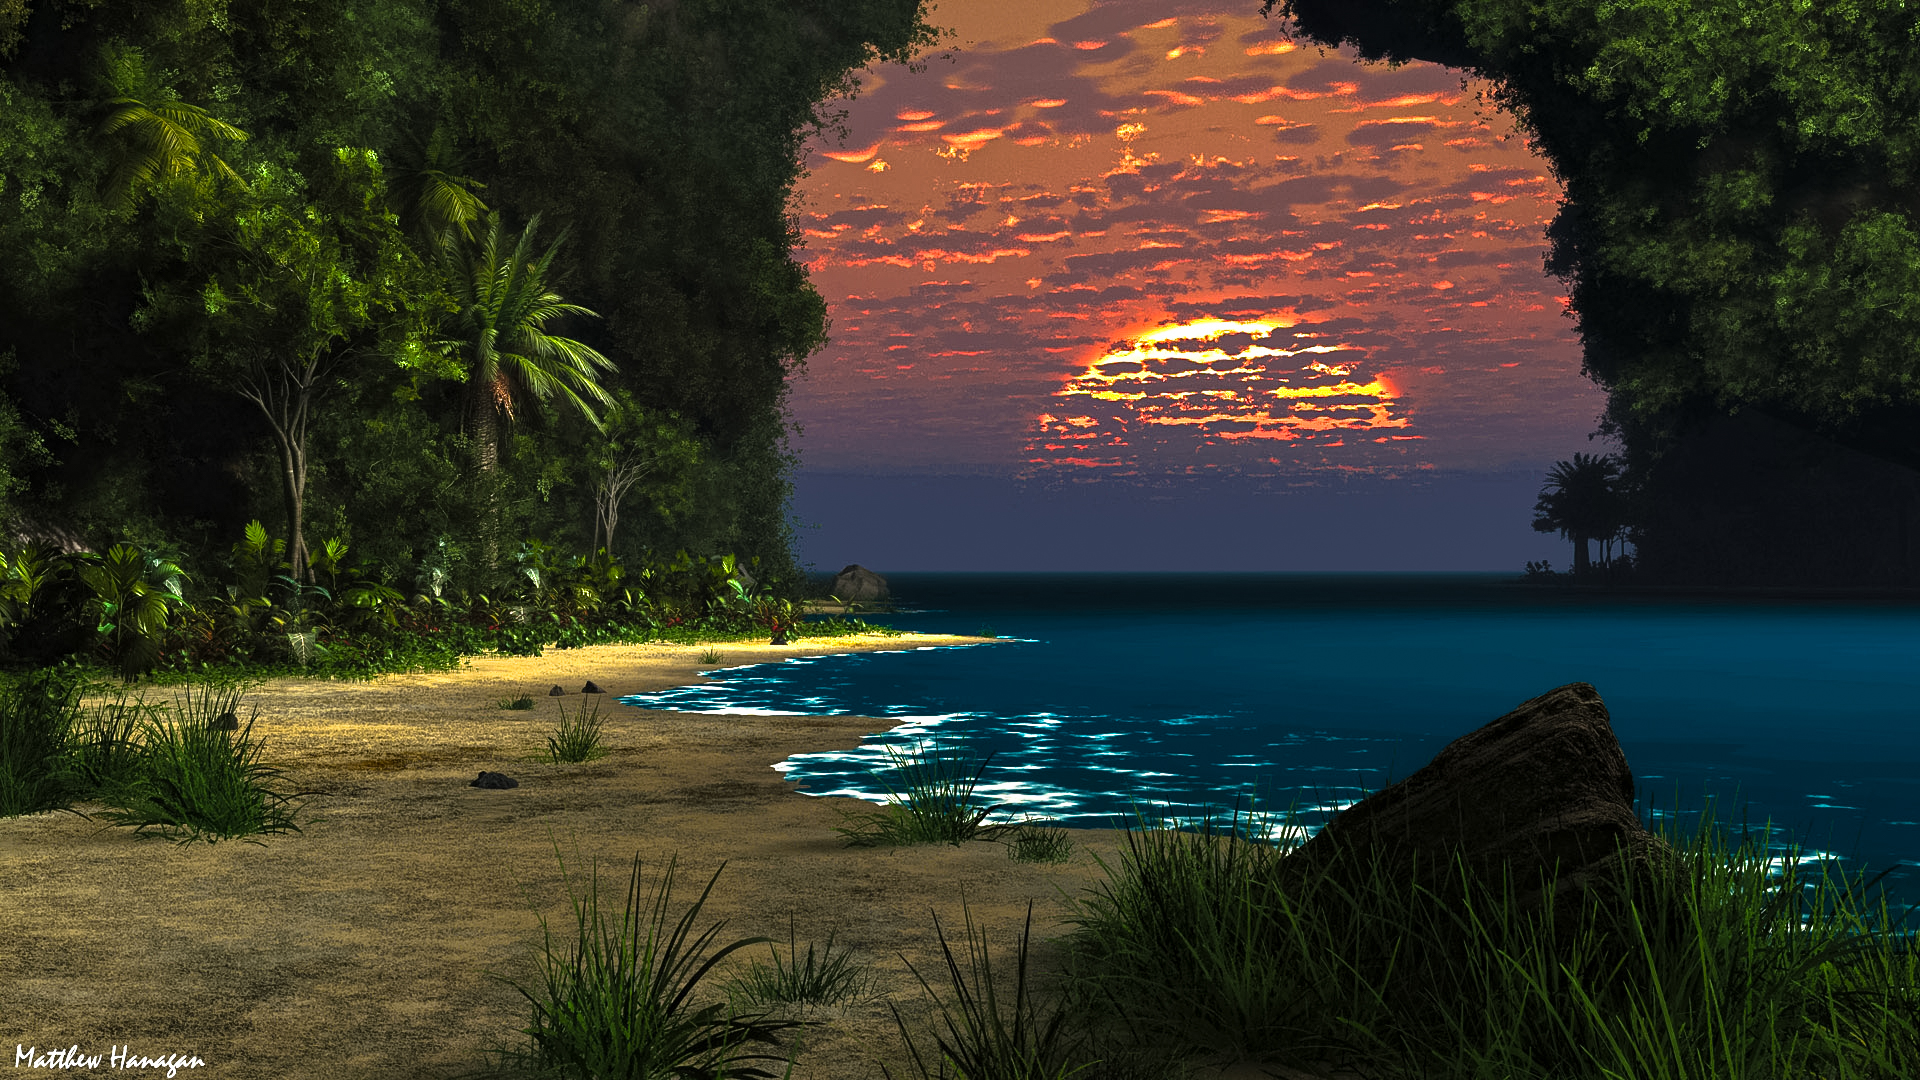 hideaway-sunset-final.jpg